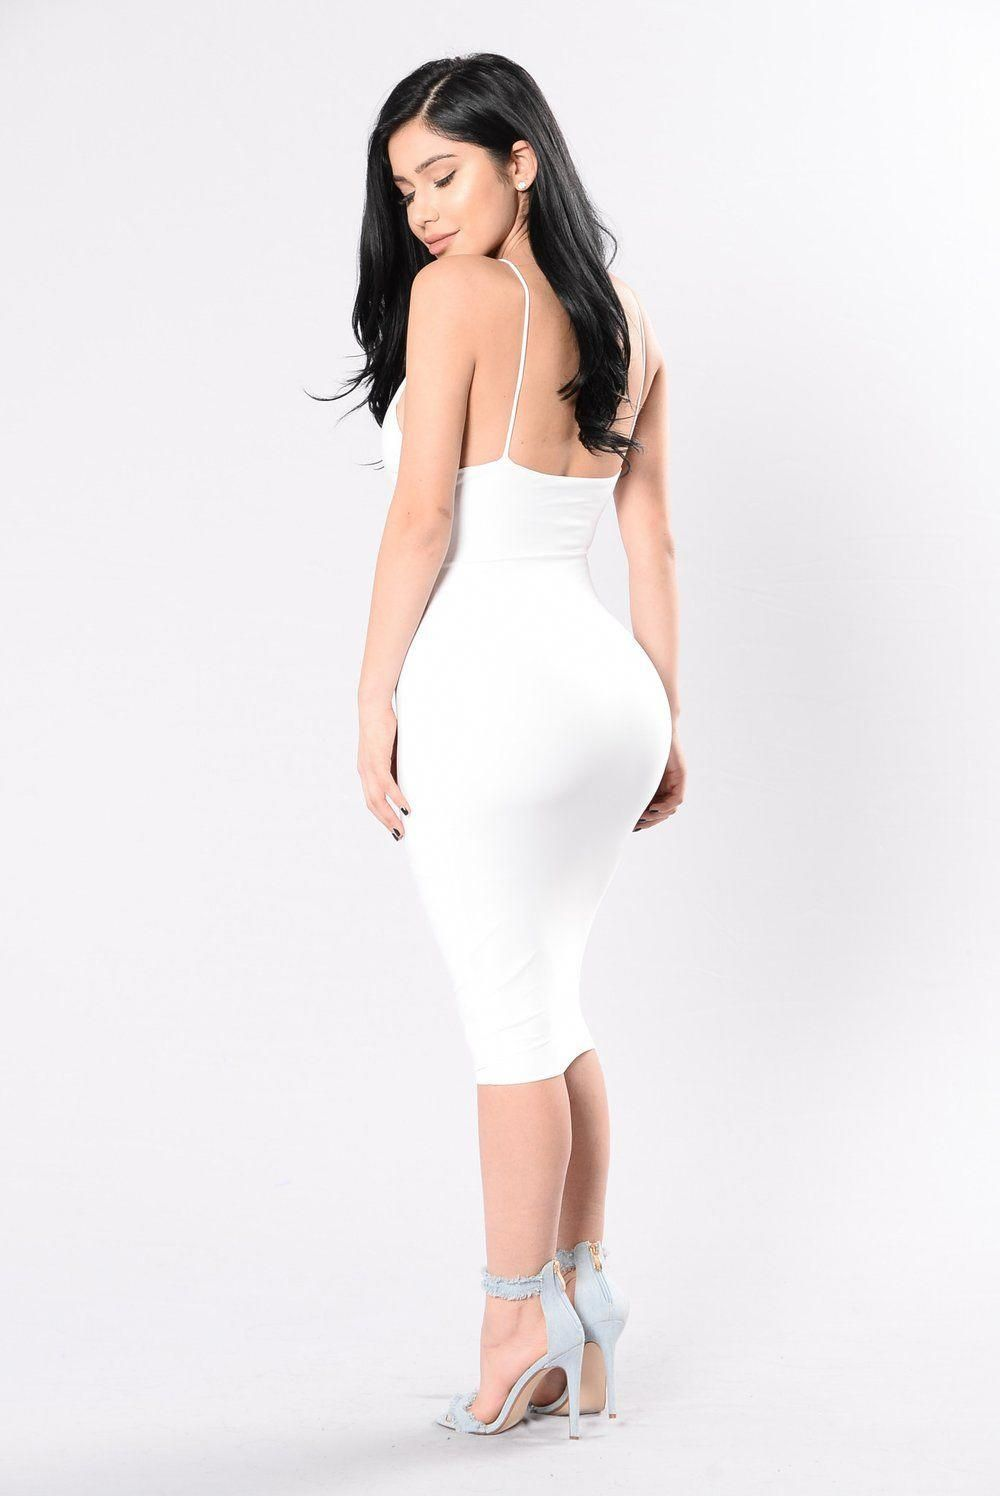 7bf65e38bca3 Simple Kind Of Life Dress - White #tightdressesclassy | Tight ...